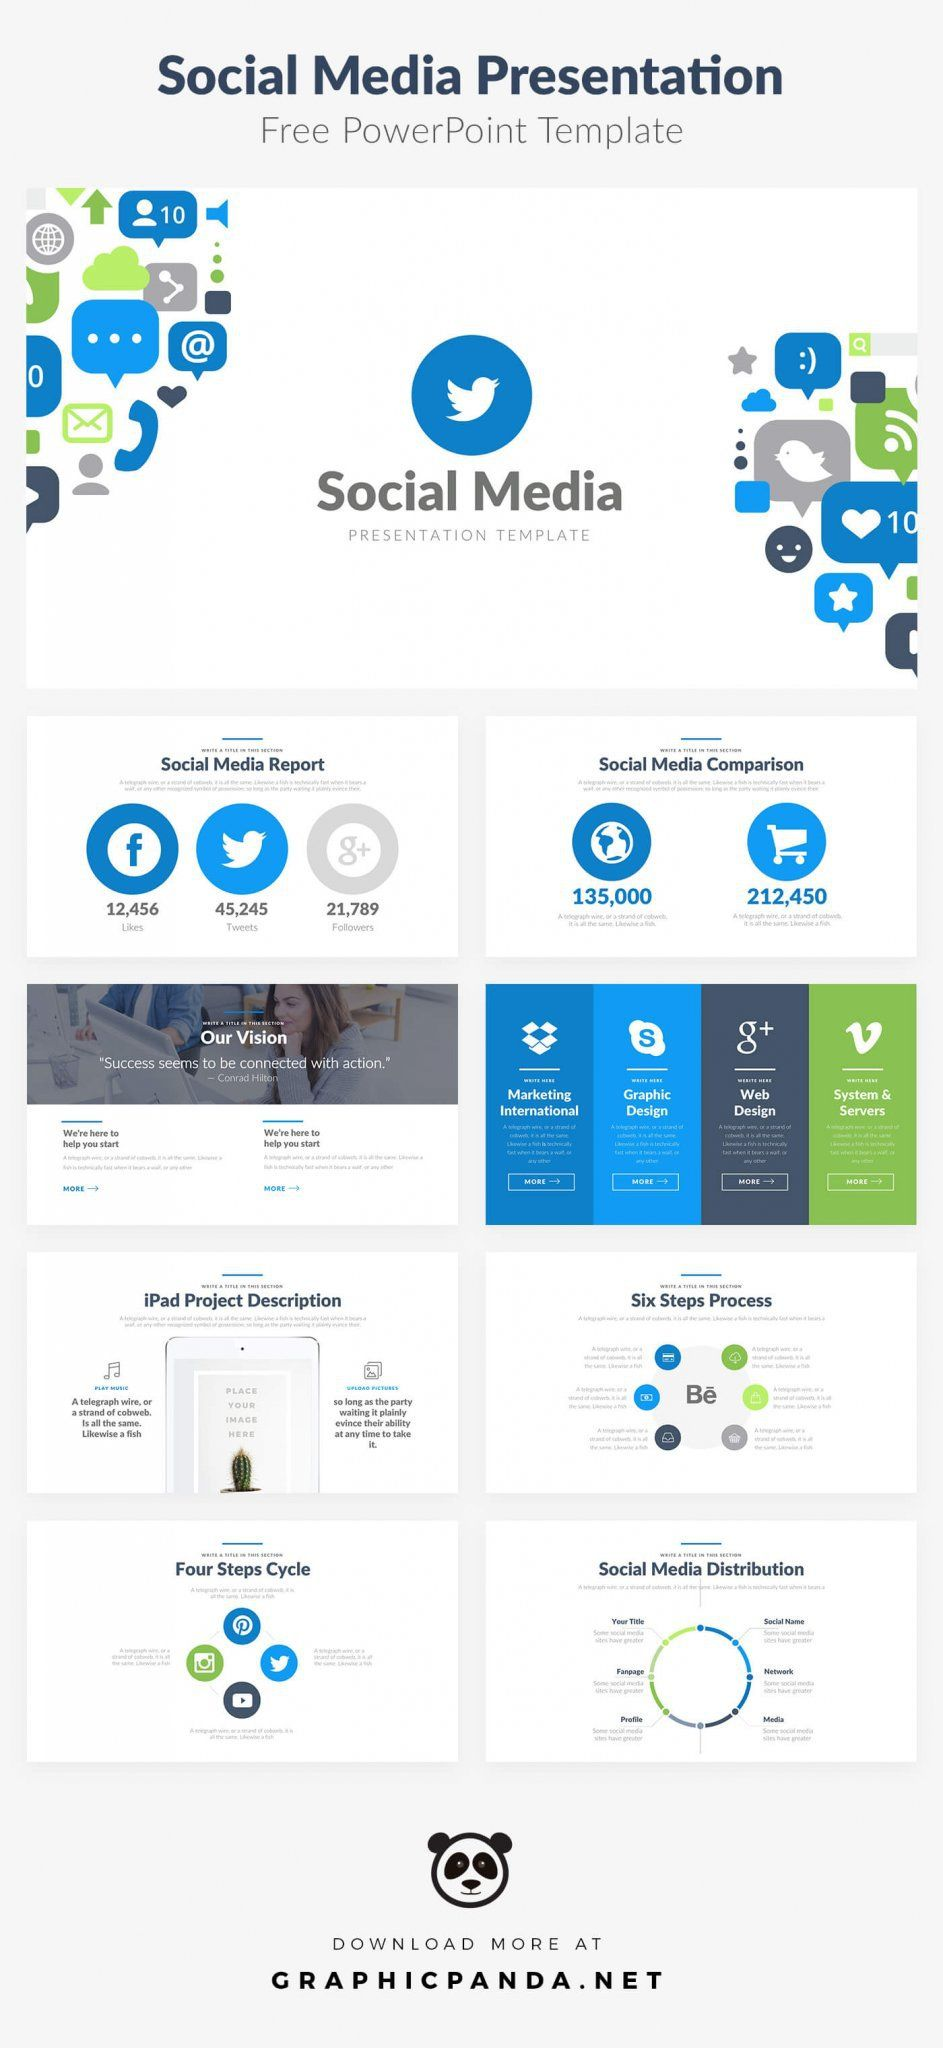 Free Powerpoint Template Free Social Media Social Media Planning Free Powerpoint Template Free social media powerpoint template